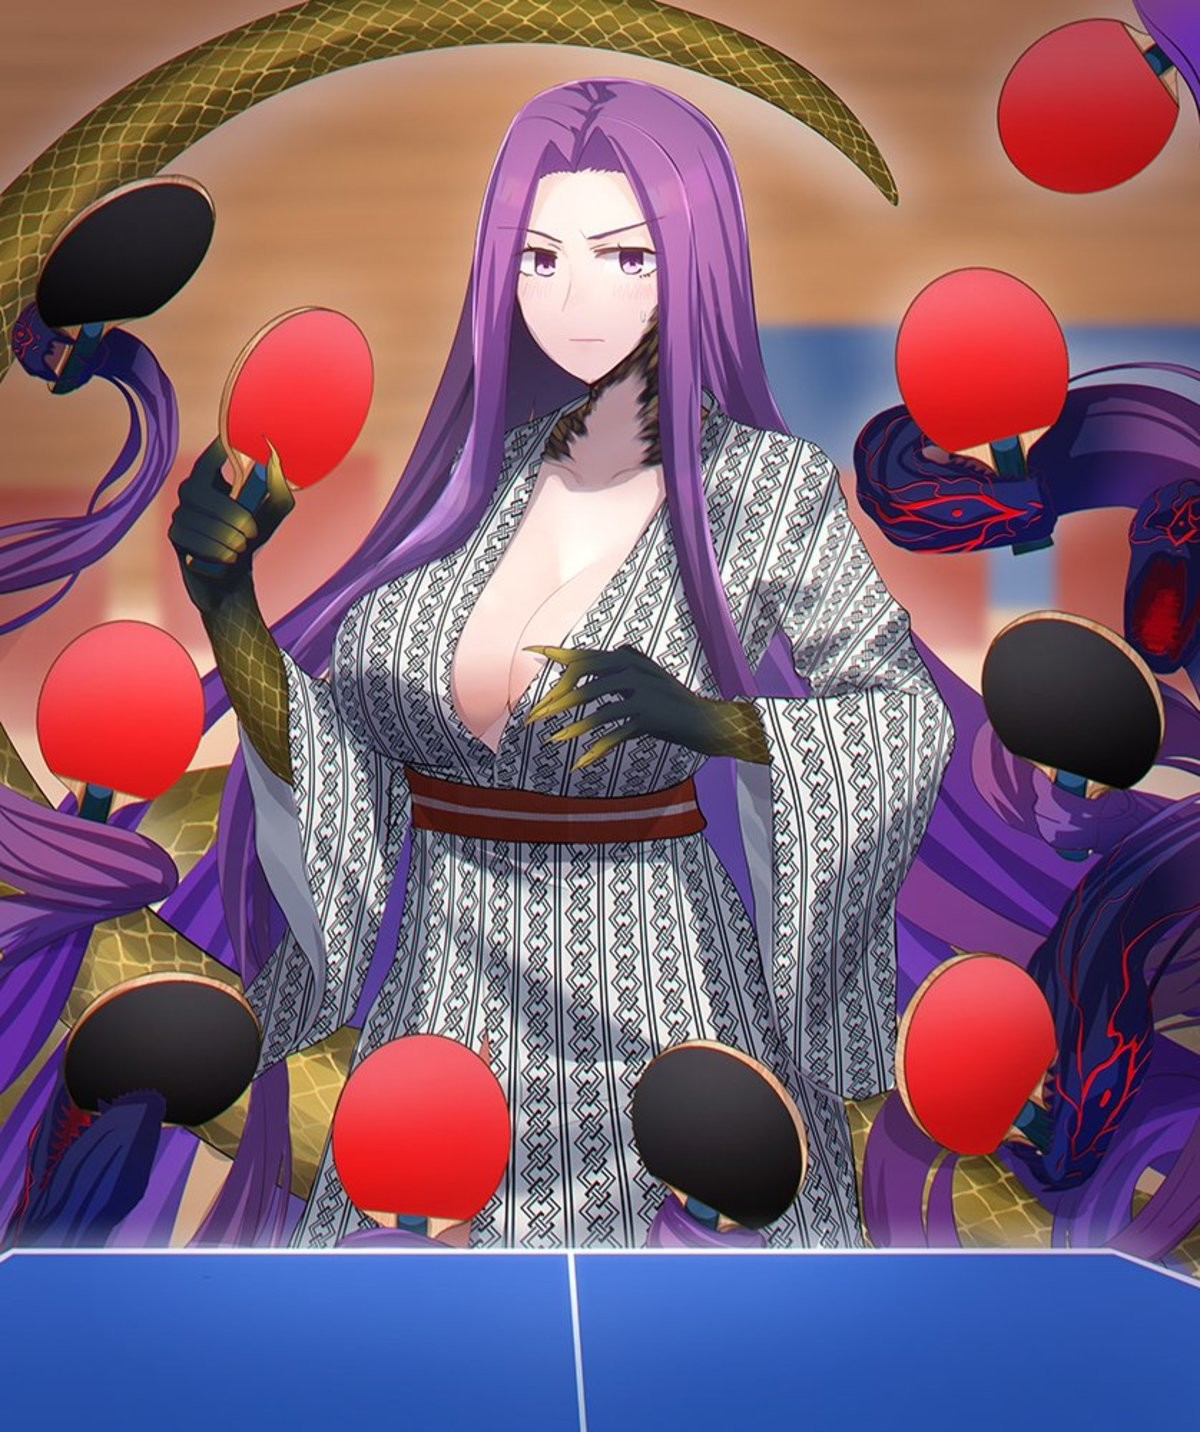 Ping Pong Final Boss. join list: MedusaHair (242 subs)Mention History join list:. I am the ping of my pong Forehand is my body and backhand is my blood I have created over a thousand paddles Unknown to edges, Nor known to sides. Have withstoo